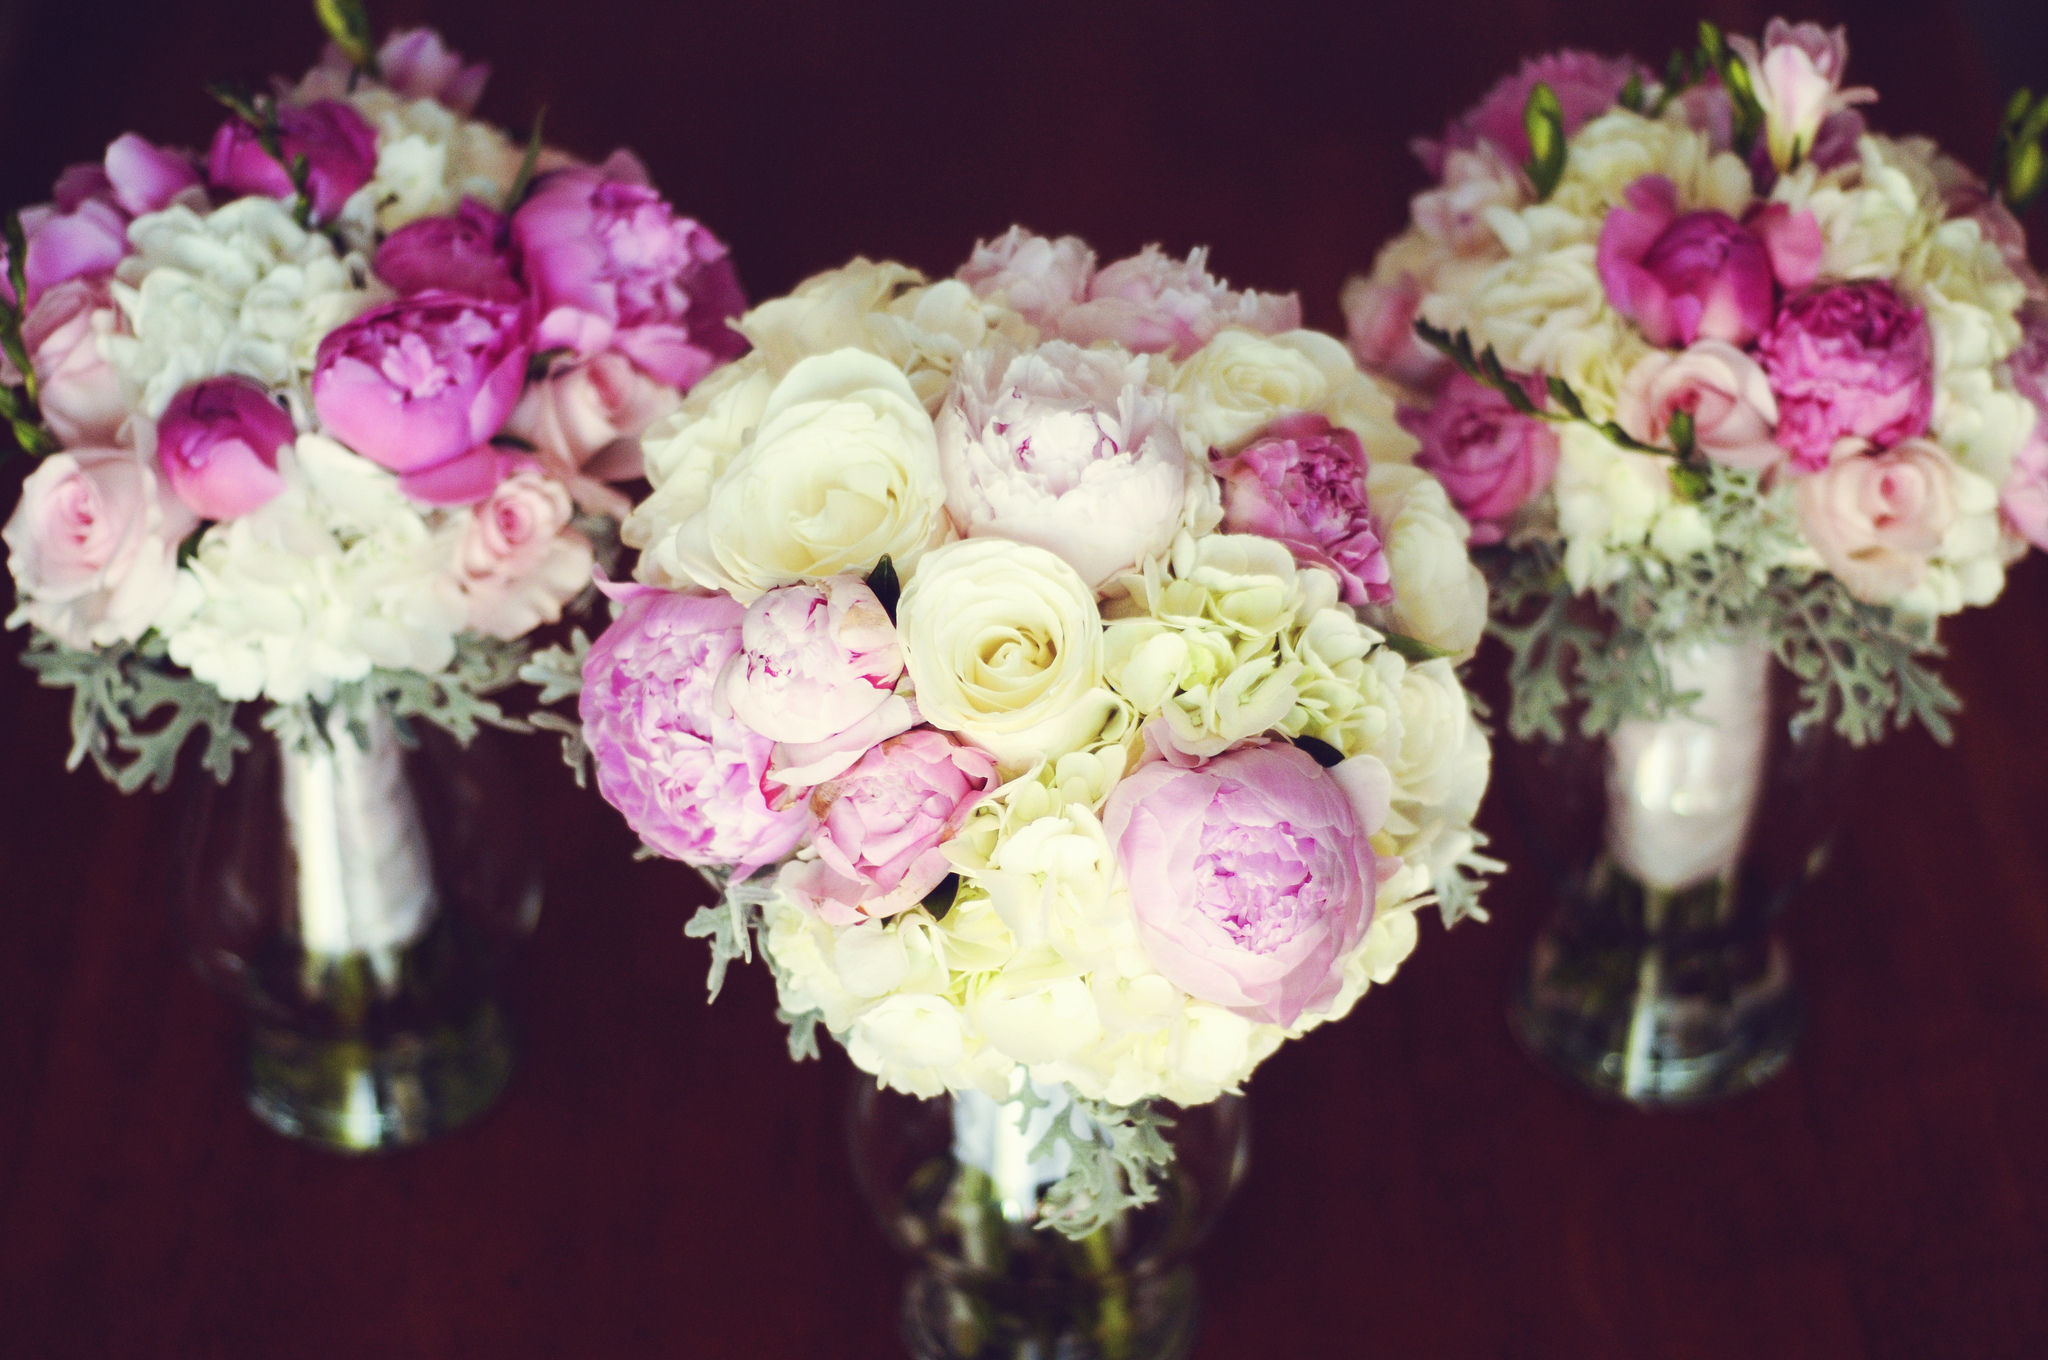 closed show me your peony hydrangea bouquets - Garden Rose And Hydrangea Bouquet